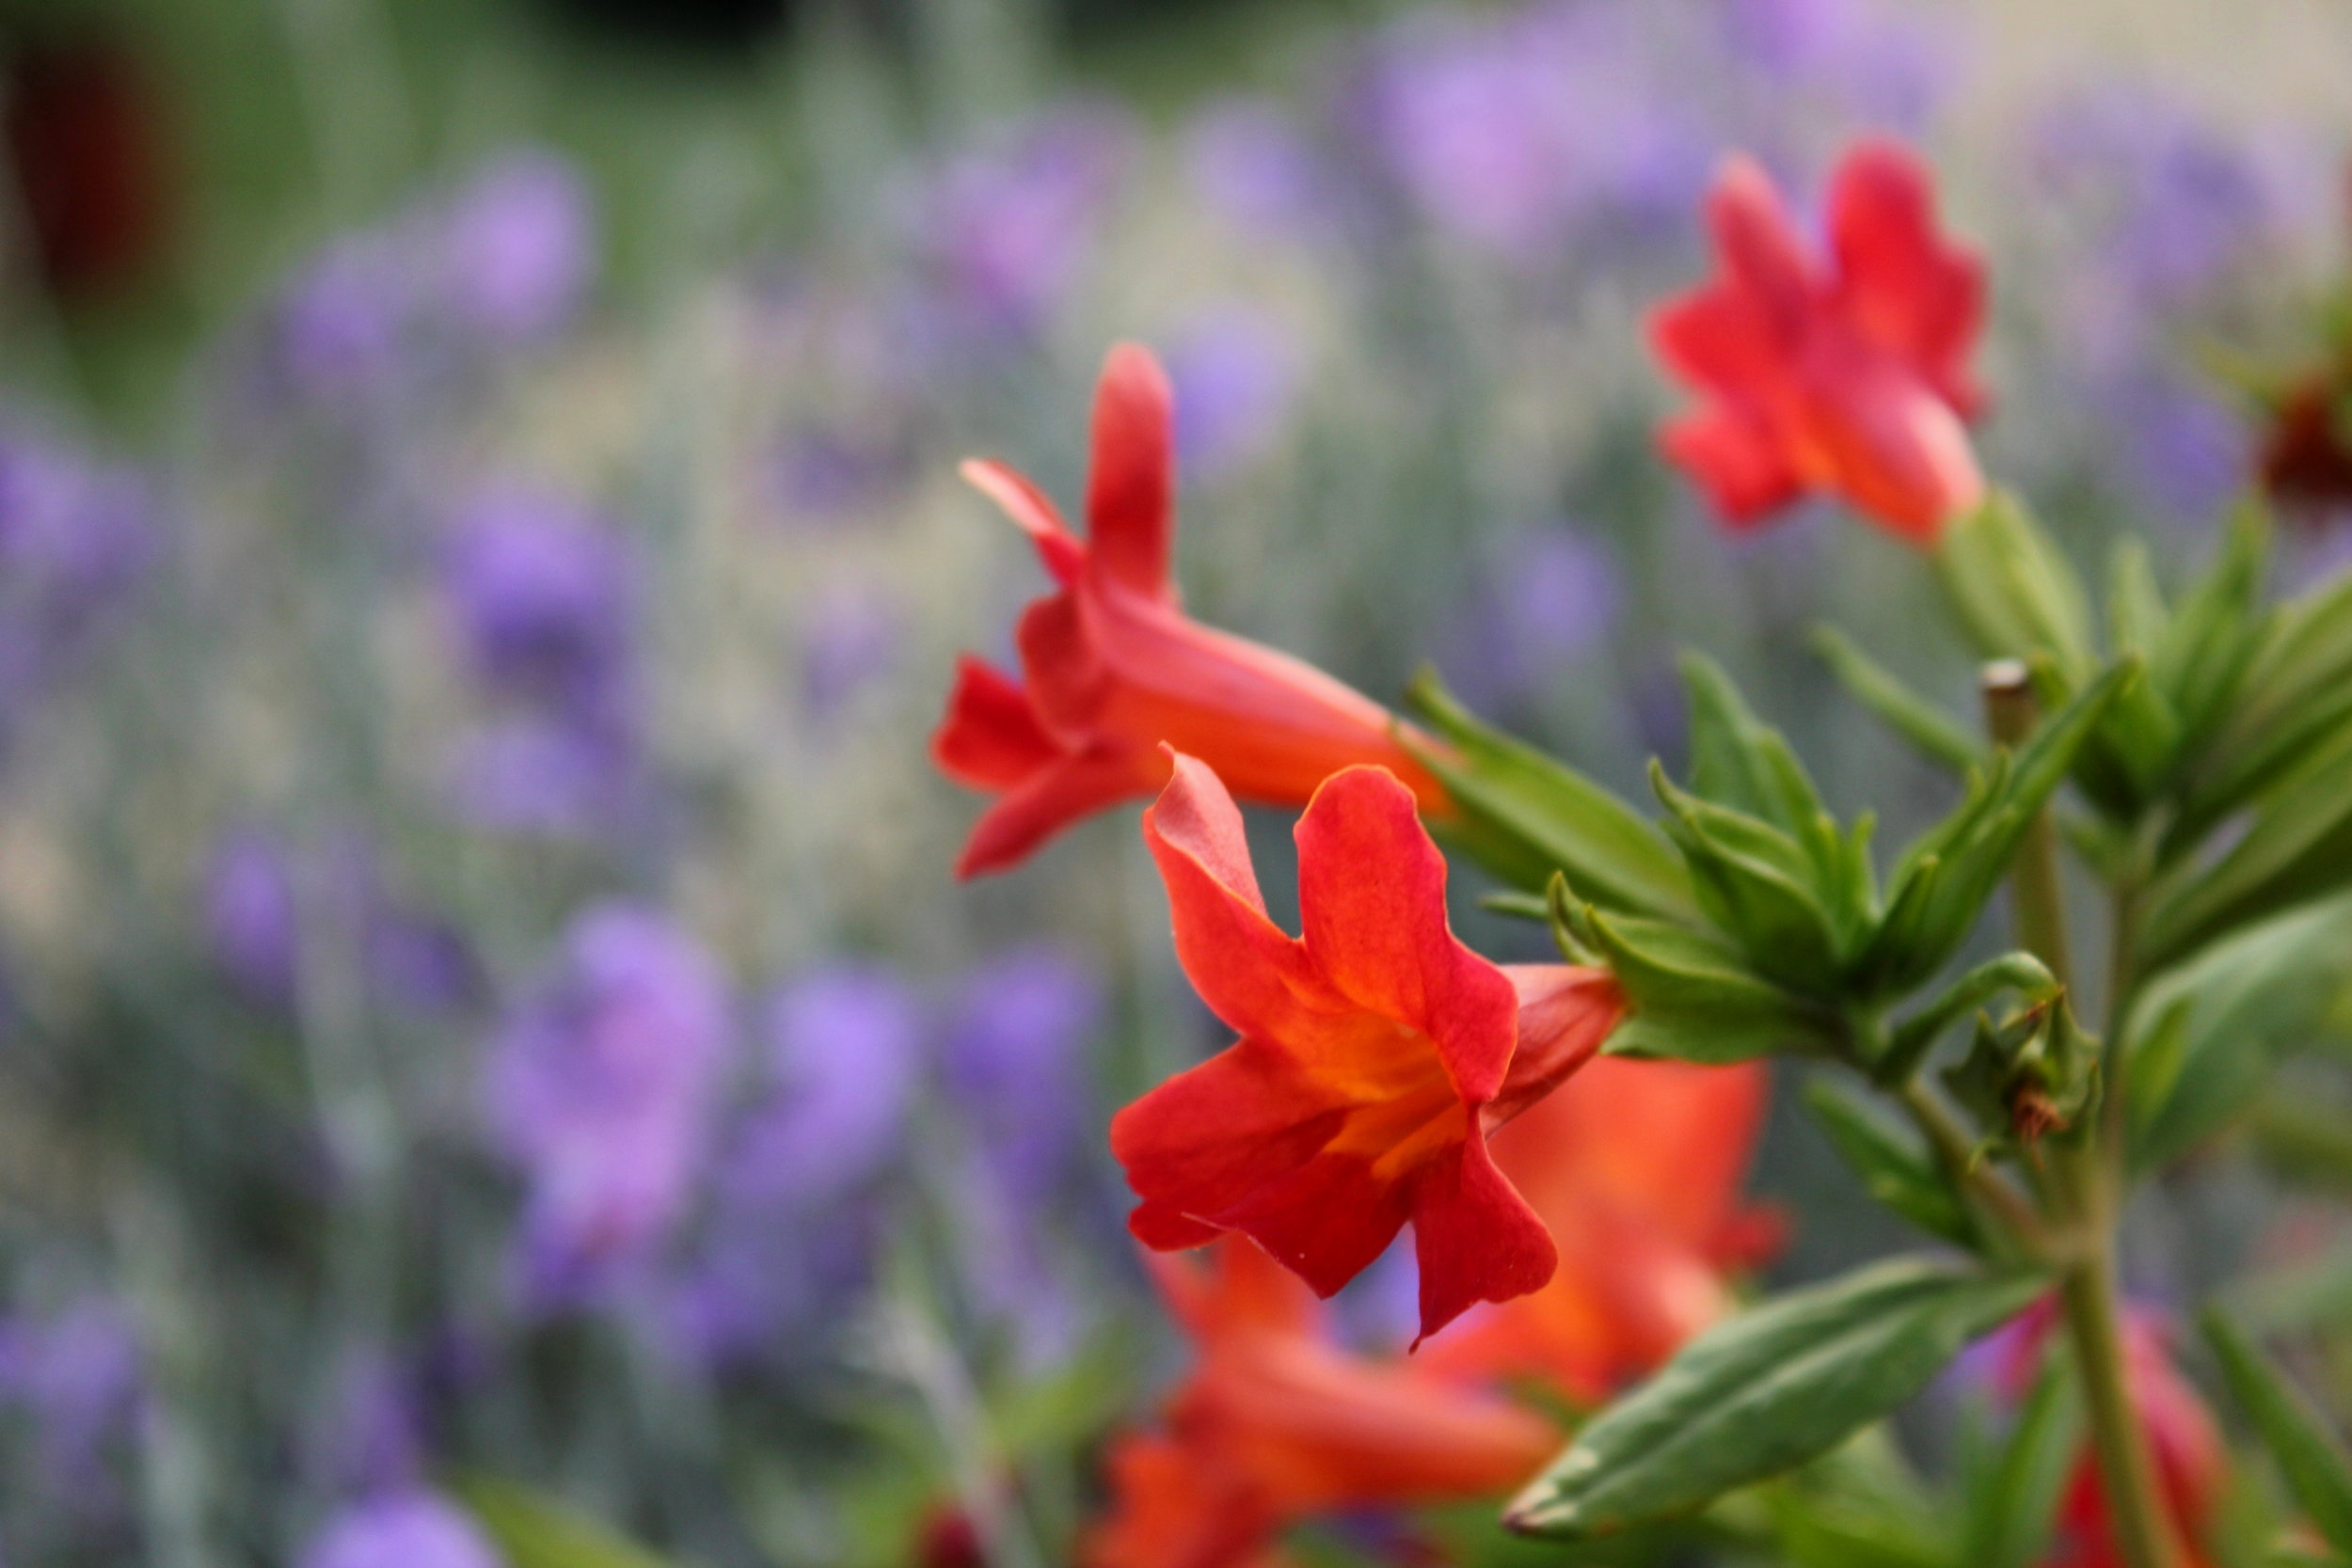 Mimulus puniccus 'Red Monkey Flower'